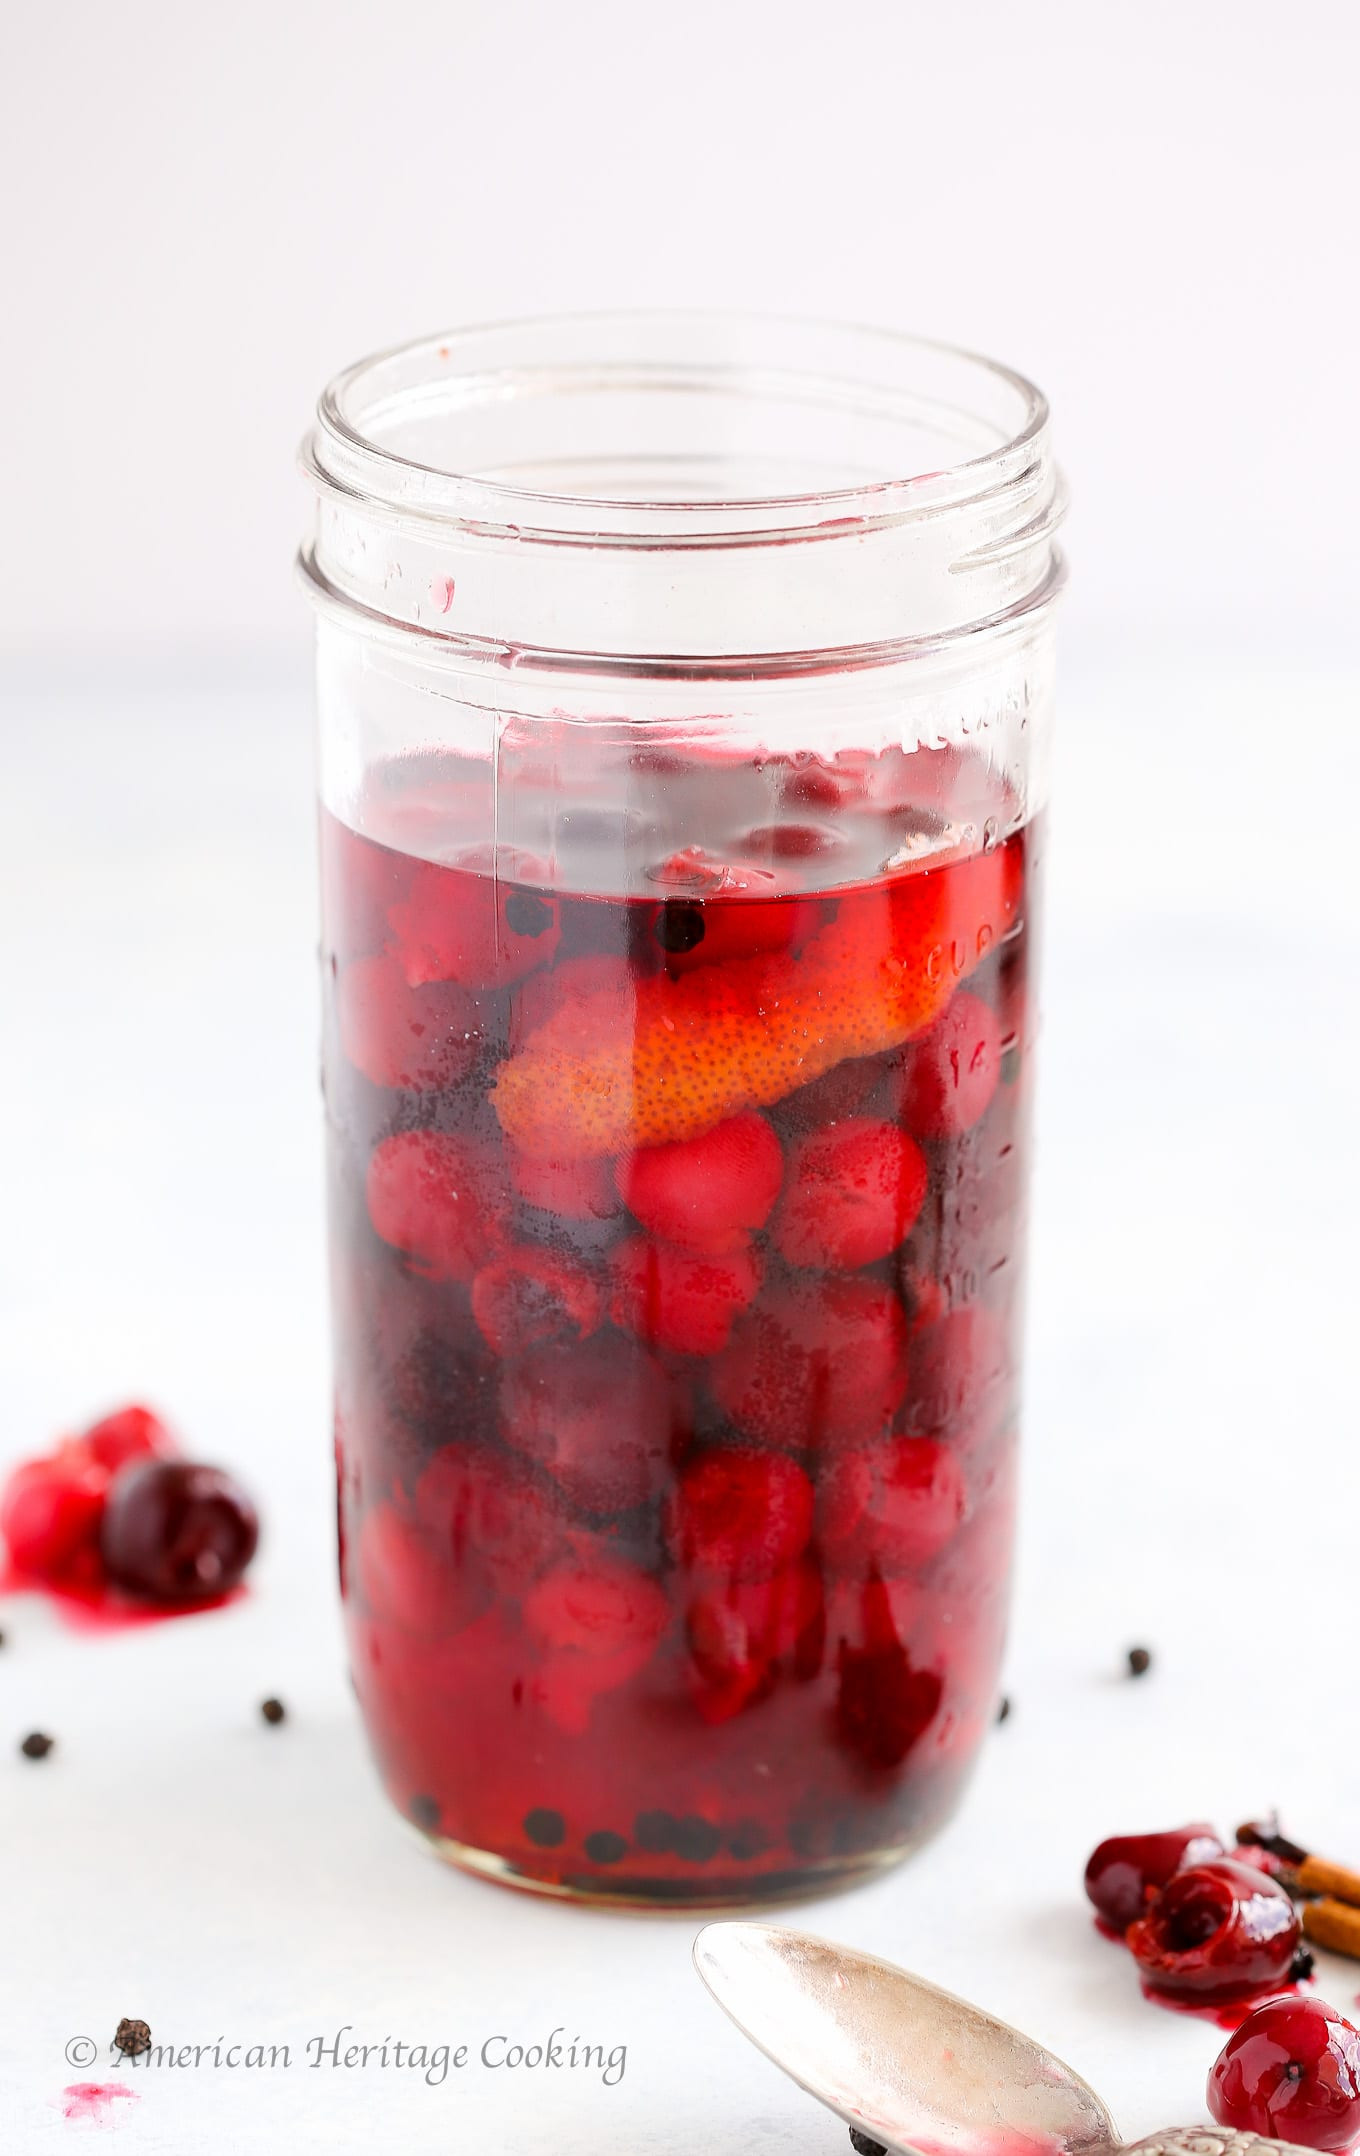 Pickled Cherries are an easy way to preserve tart or sweet cherries for the months to come! They make a zippy addition to any salad, chicken, pork, duck, or beef dish! And as an easy, delicious topping for tacos!